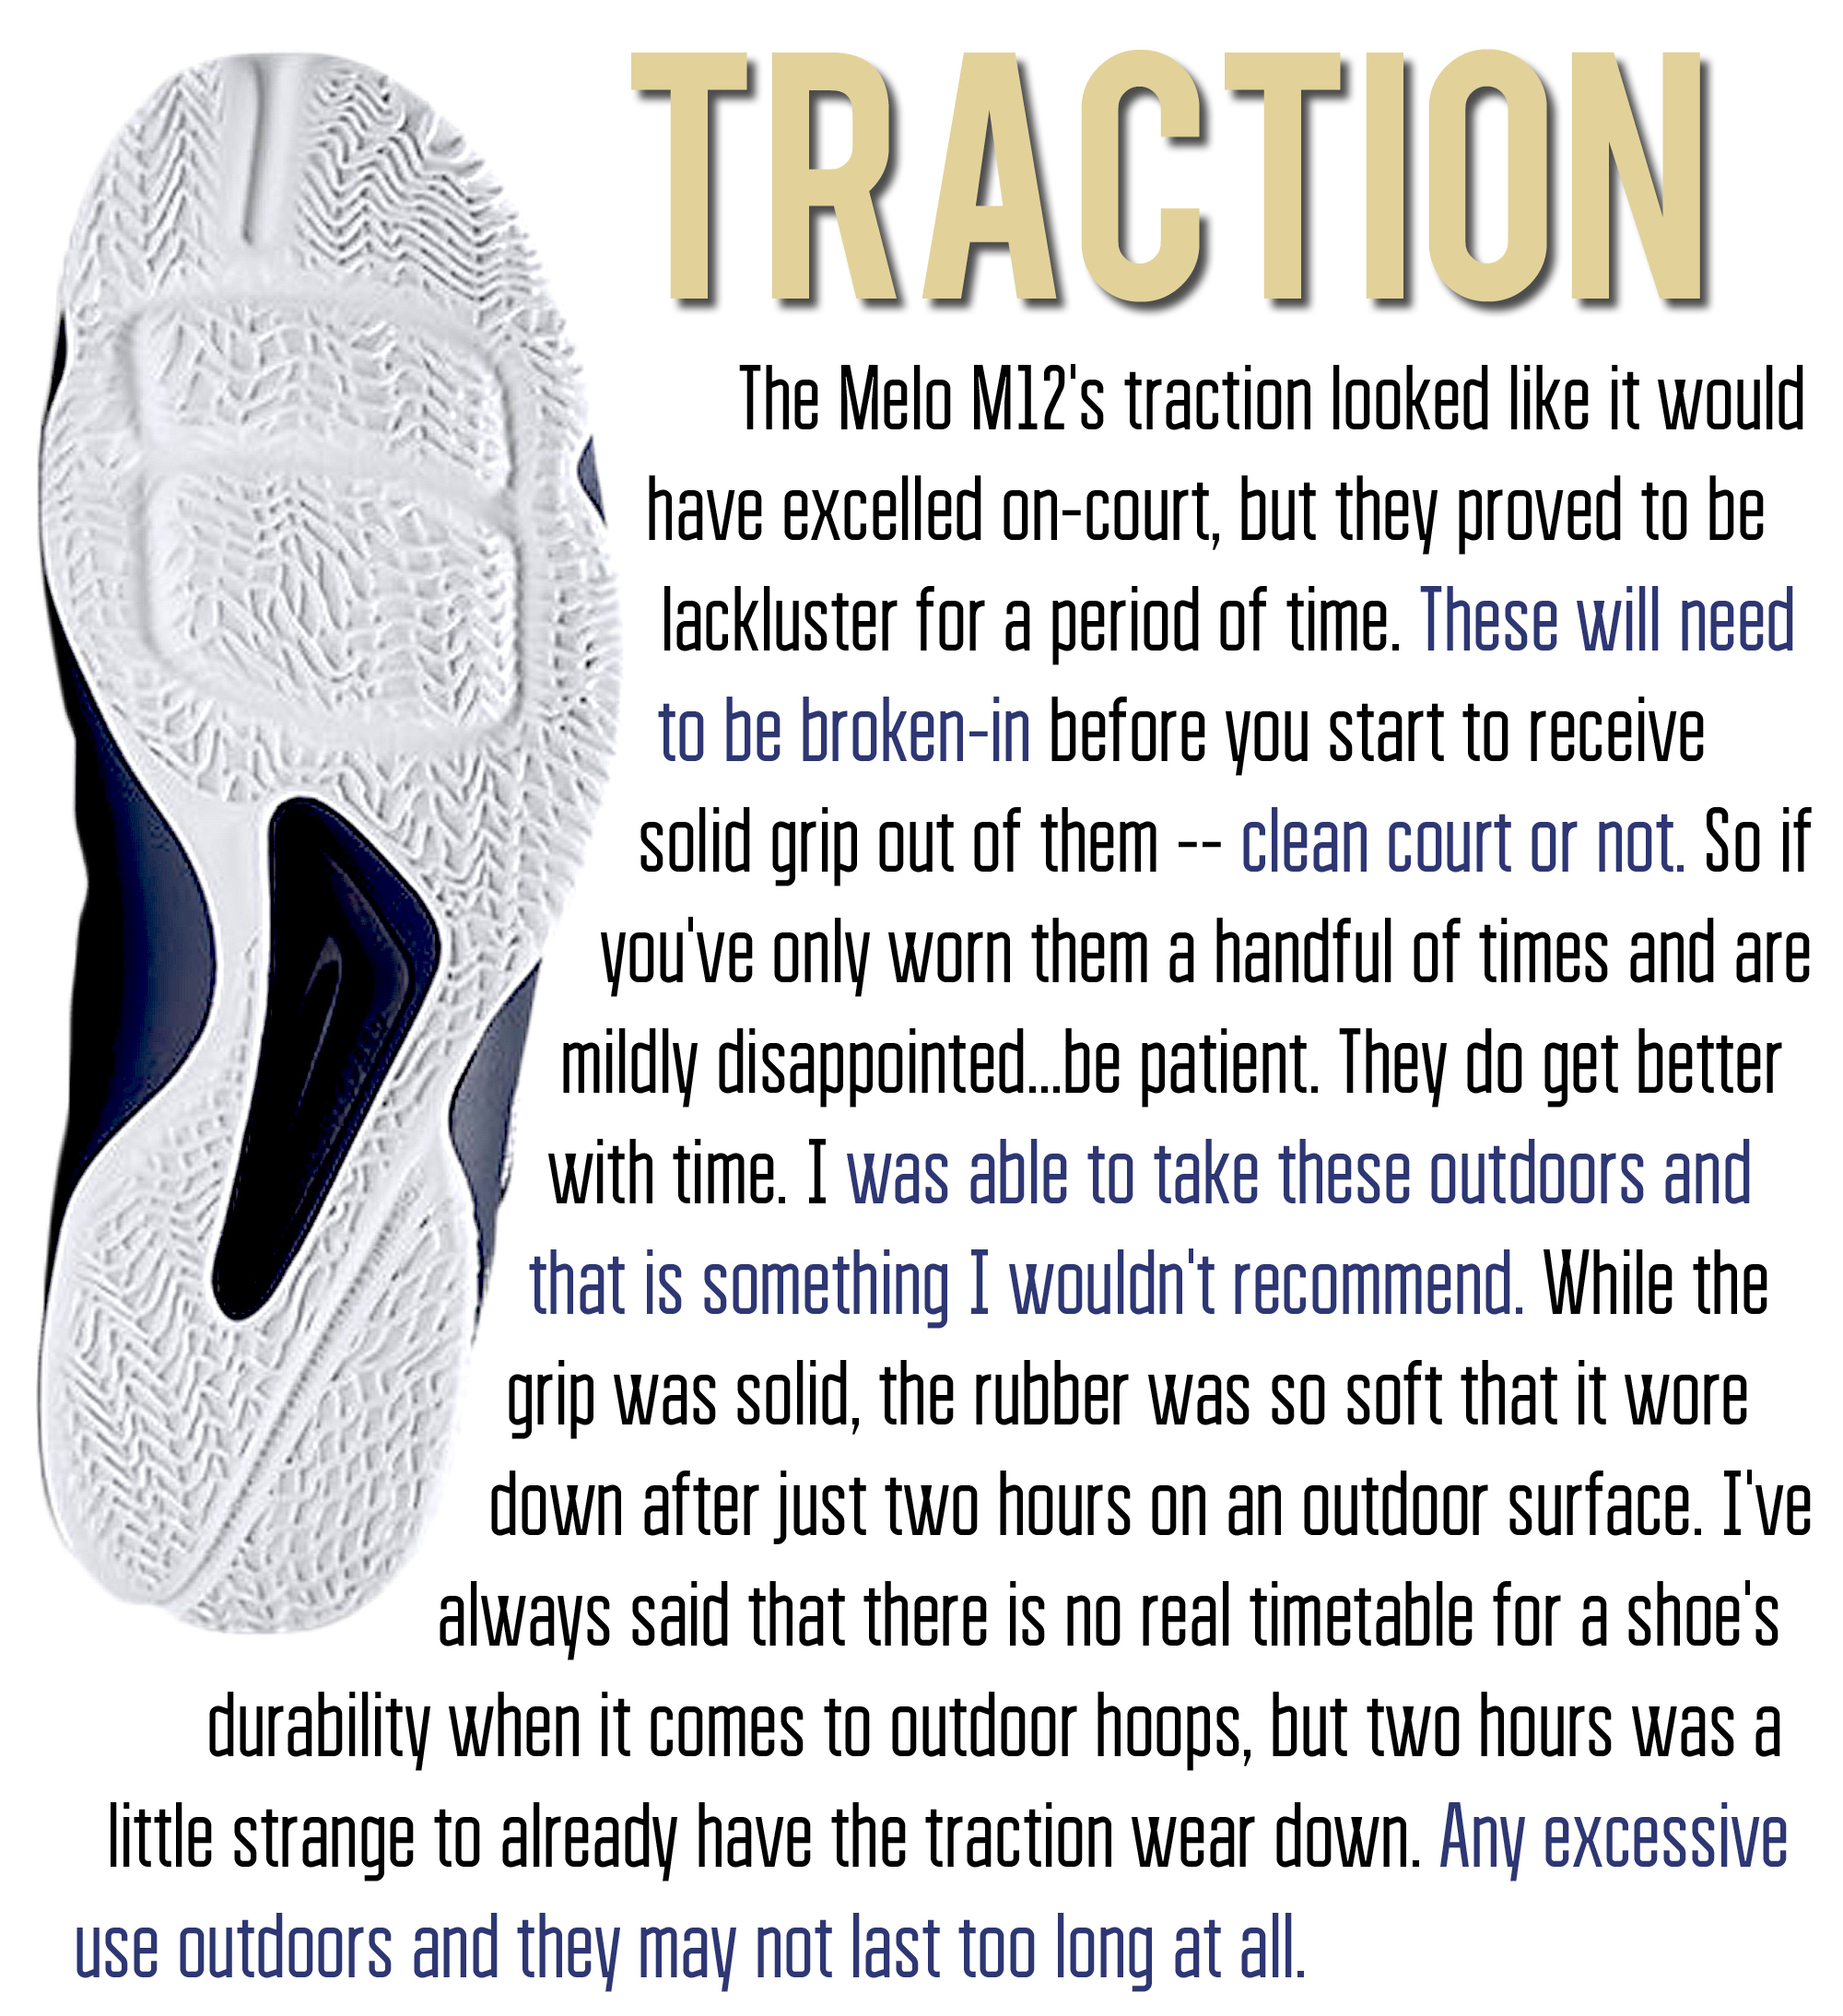 M12 - Traction